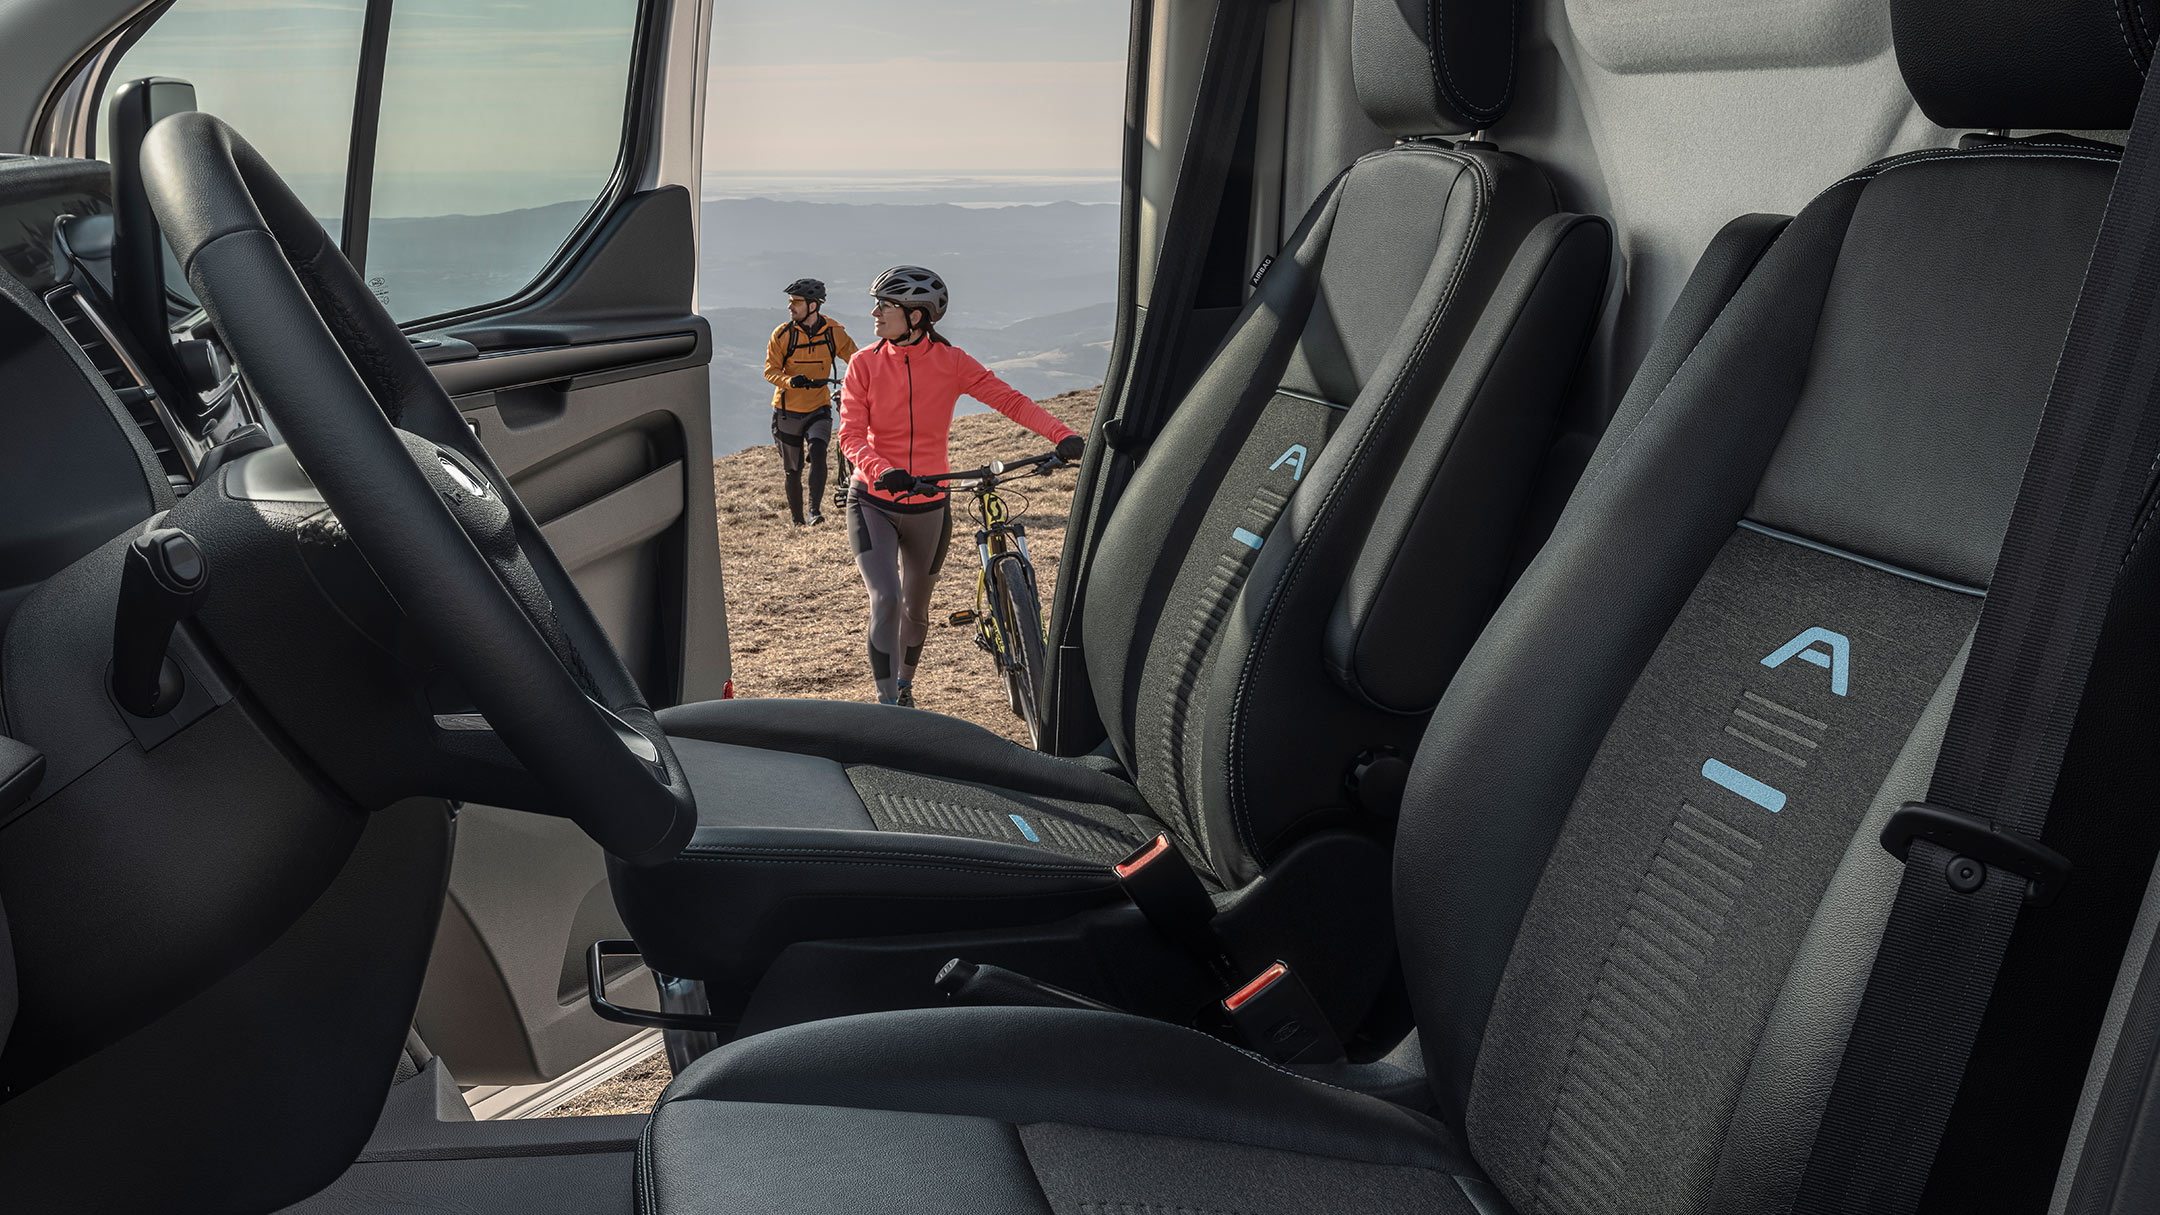 Ford Transit Custom Active inside view with door open and two cyclists walking